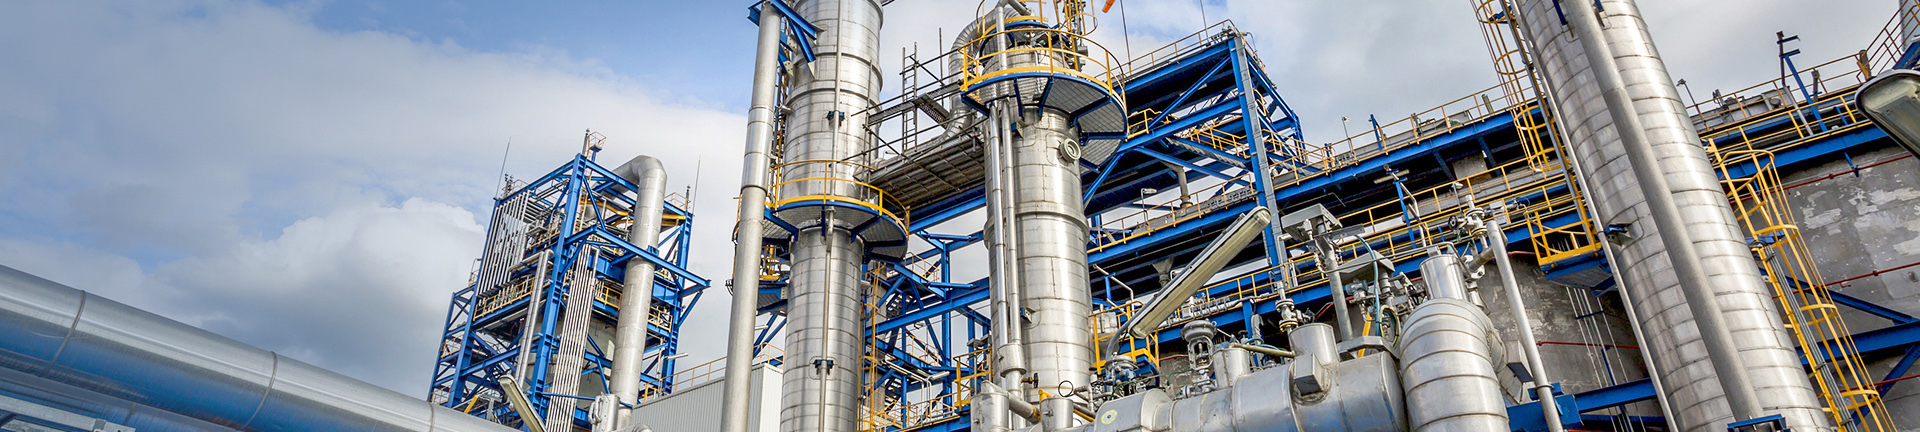 Petrochemical Industry_Tanks_Equipment Fabrication Solutions-EPC-2